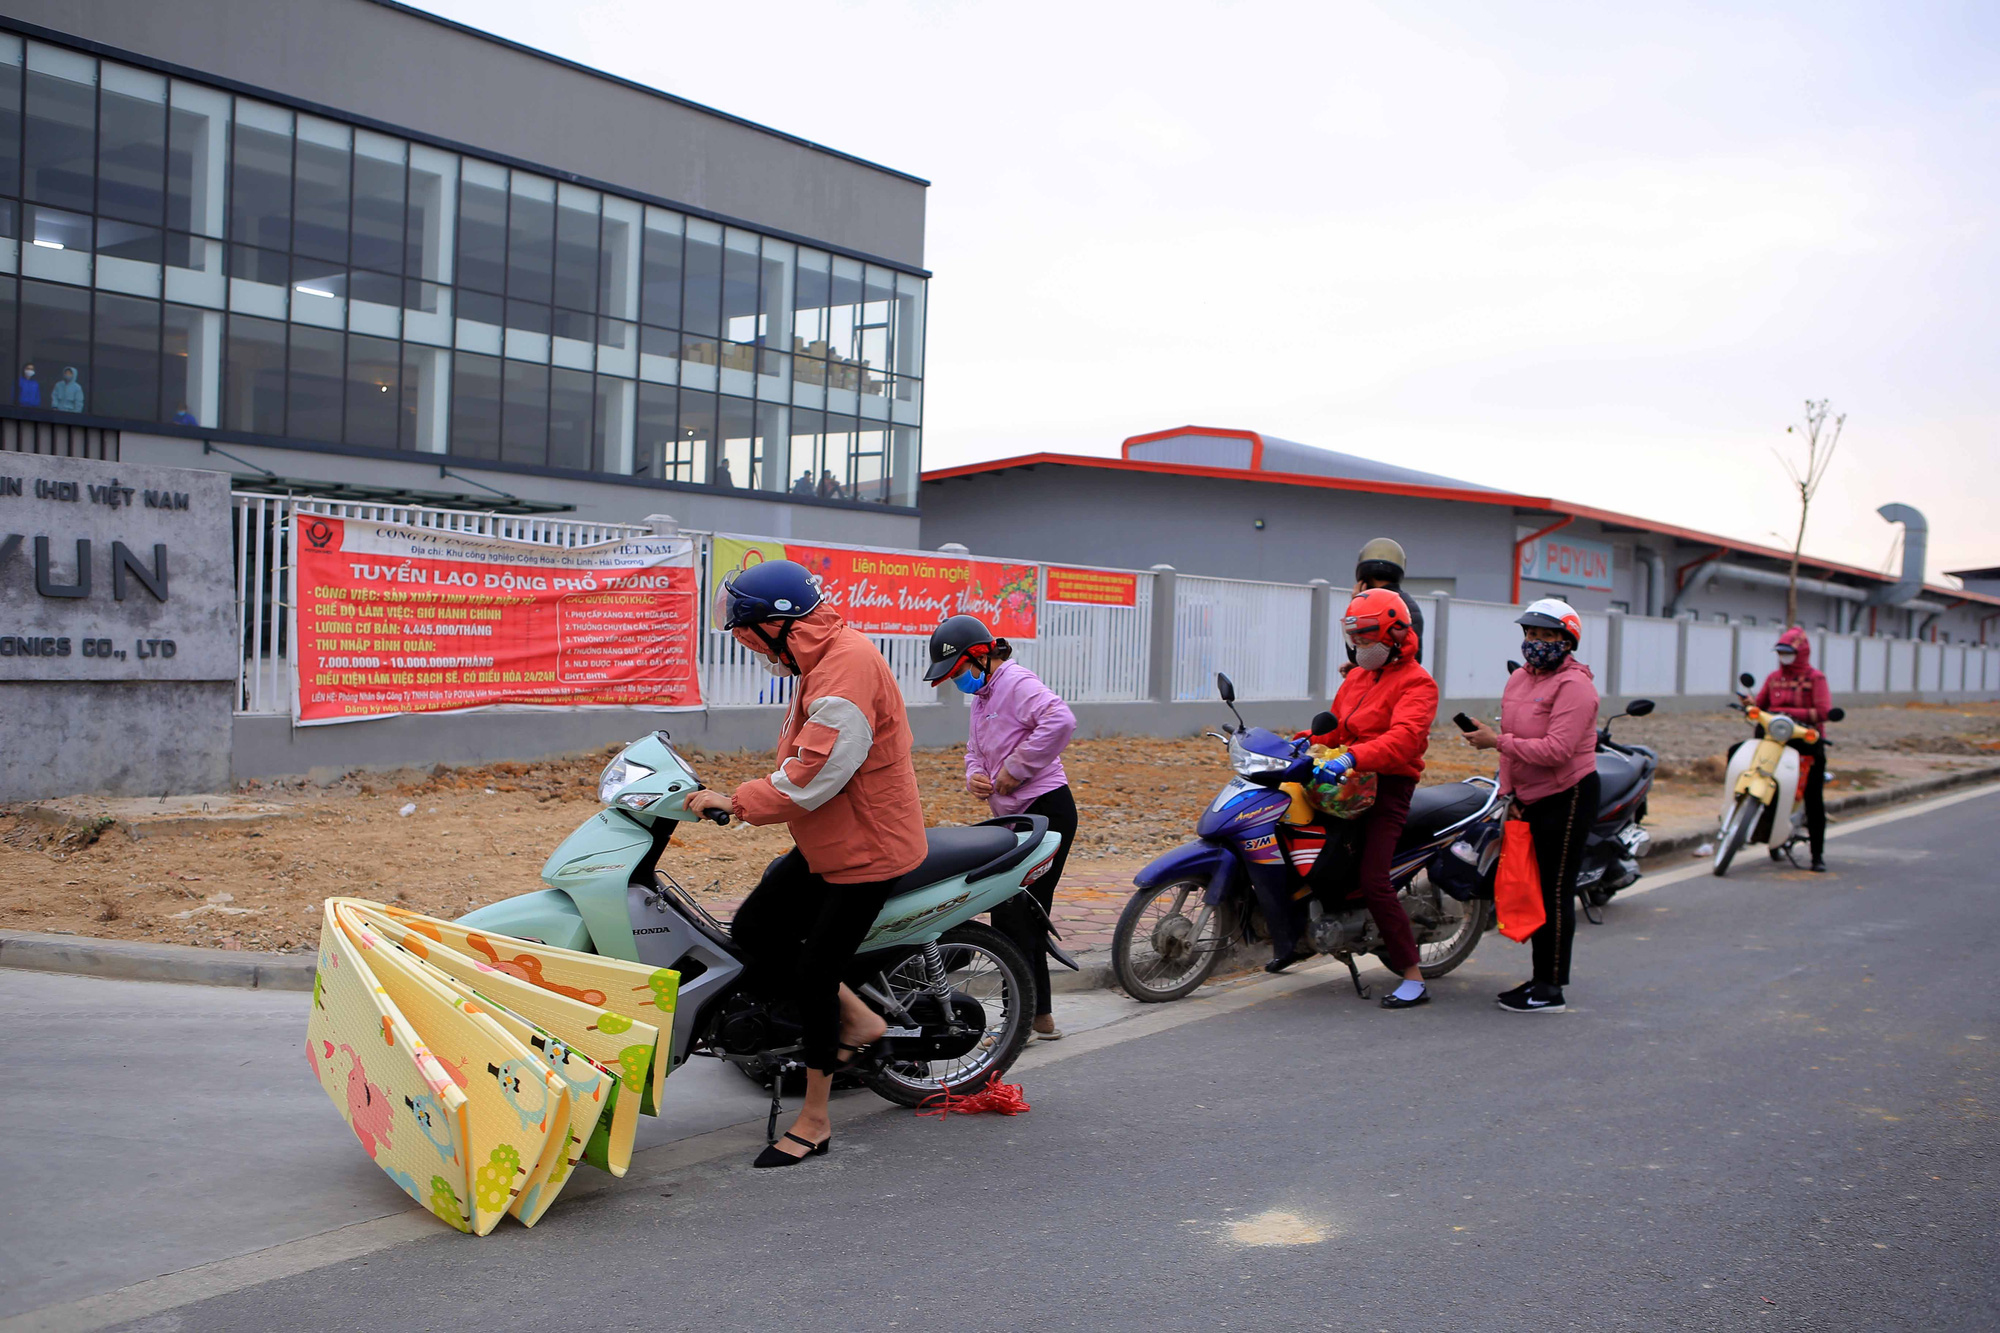 Family members give supplies to workers at Vietnam Poyun Electronics in Hai Duong Province, Vietnam, January 28, 2021. Photo: Anh Cuong / Tuoi Tre